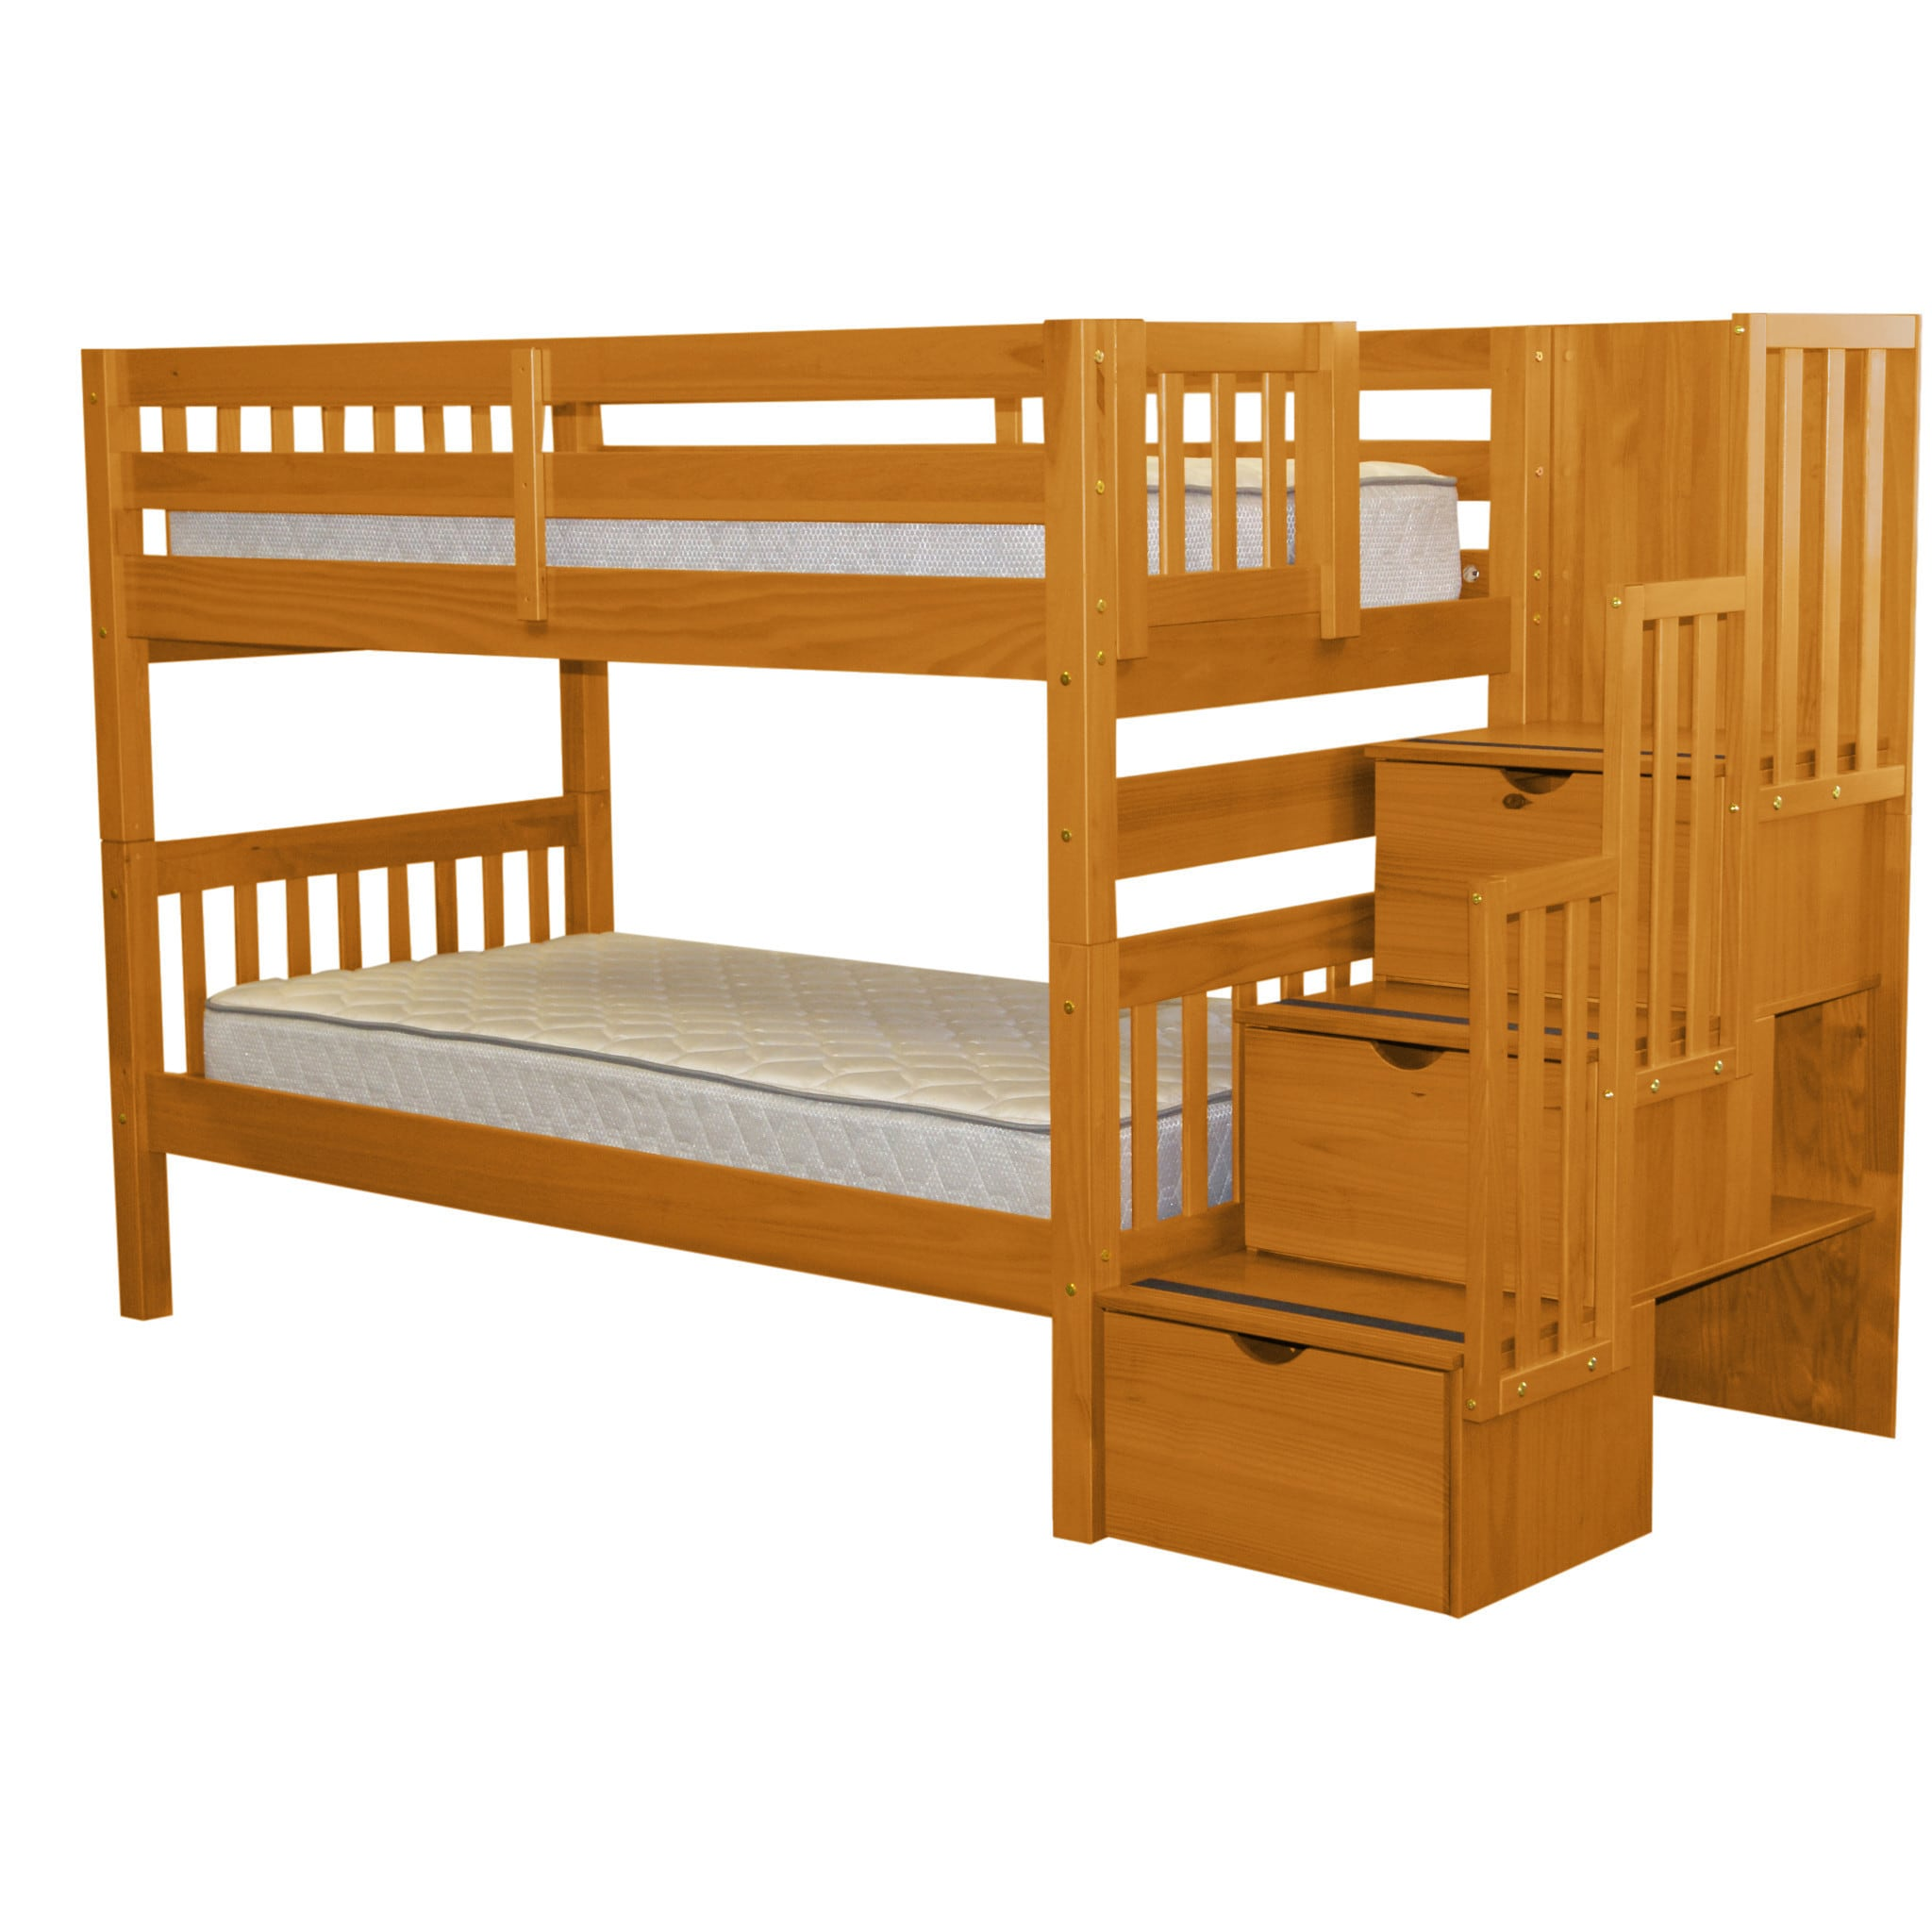 Bedz King Stairway Bunk Bed Twin over Twin with 3 Drawers...